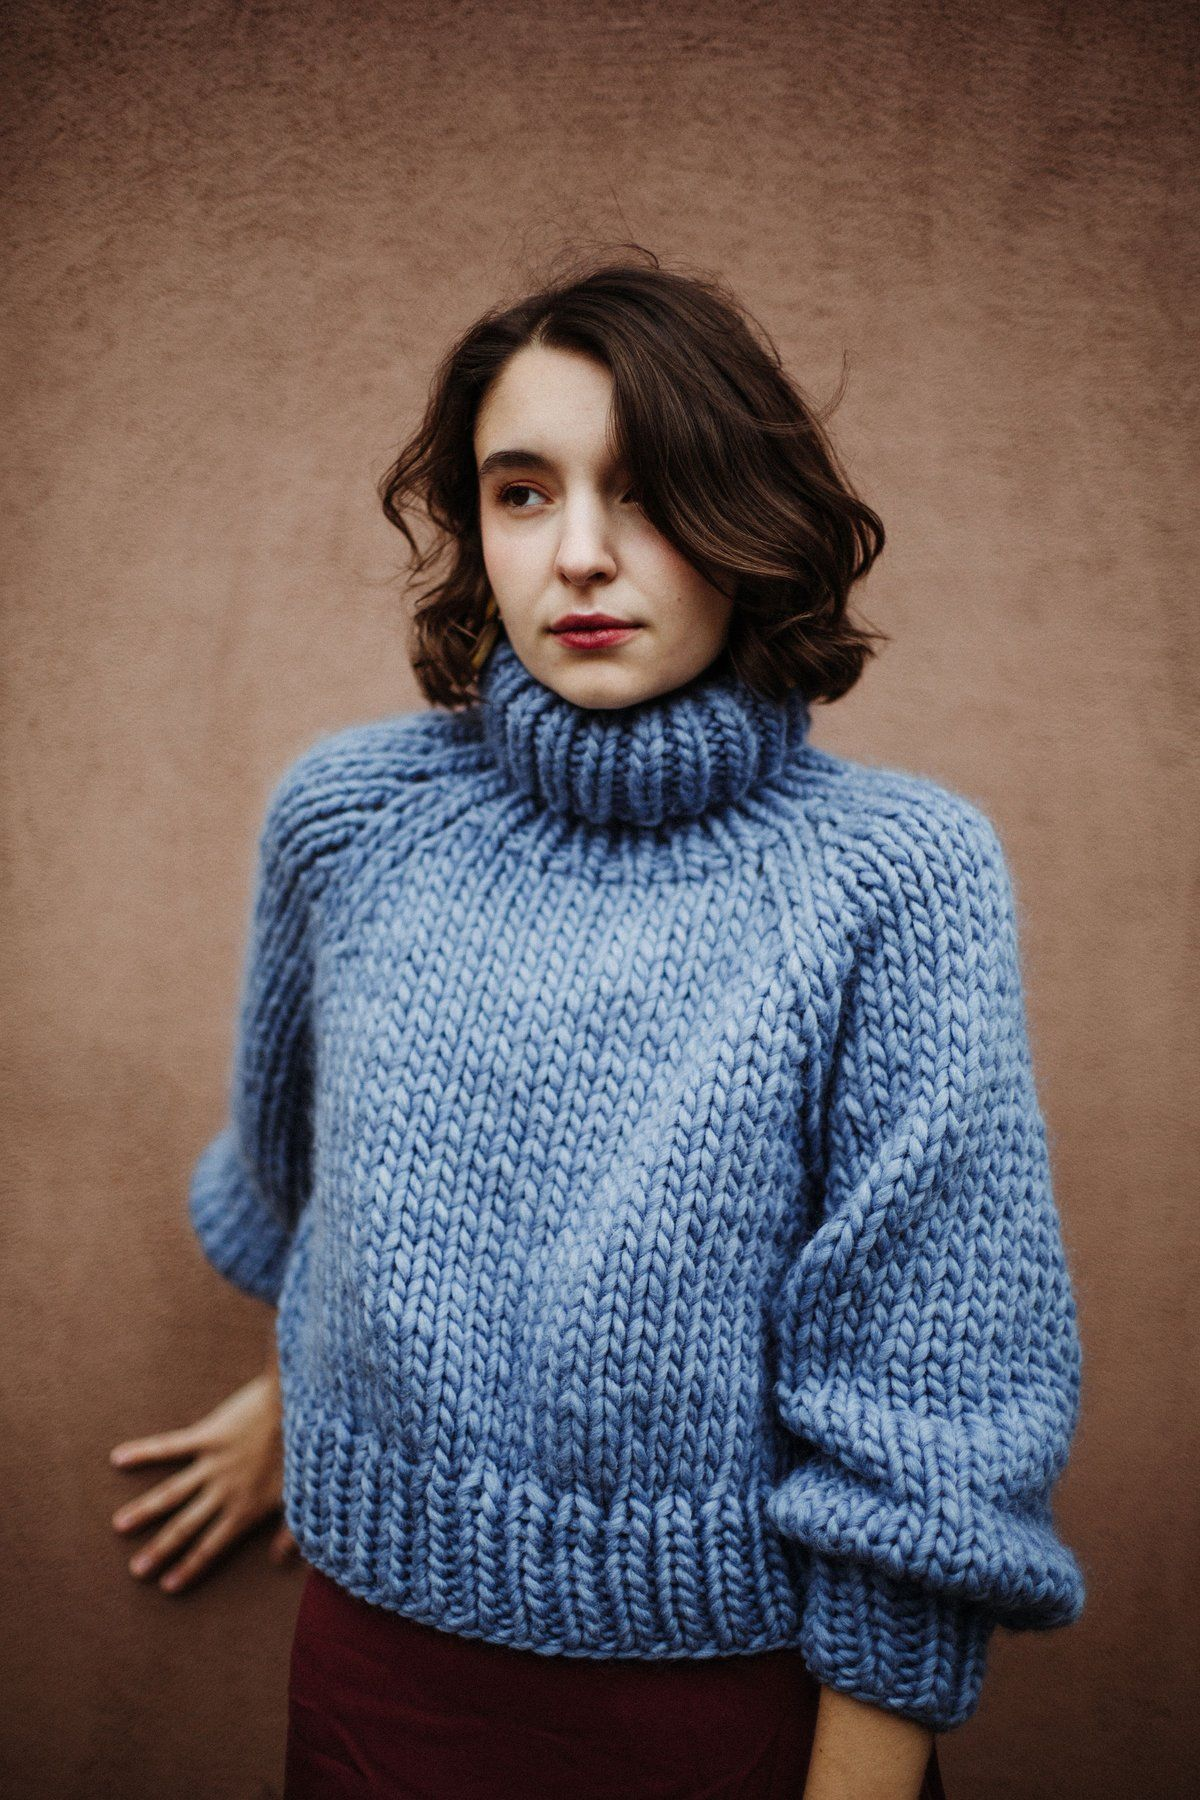 e284da67 Moosonee Sweater (shown in Stonewashed Denim) | KNITTING + CROCHET ...